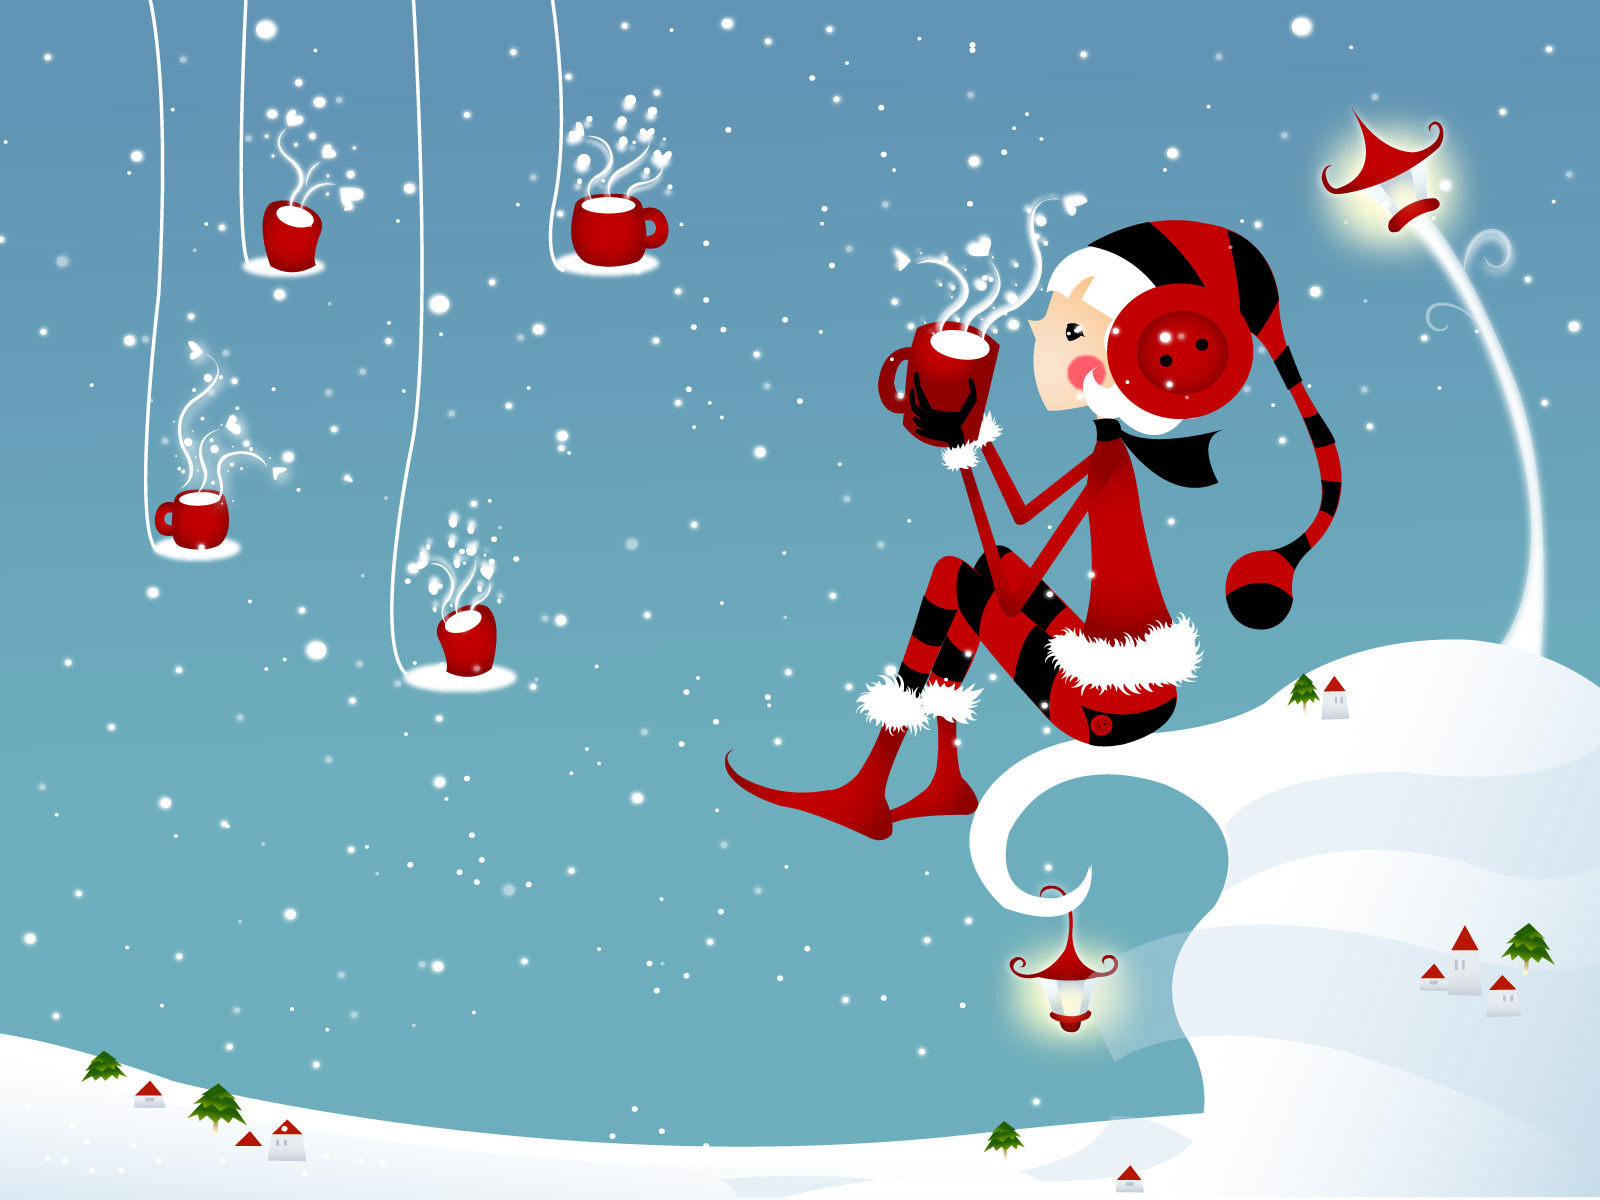 Christmas wallpaper   Christmas Wallpaper 9330975 1600x1200